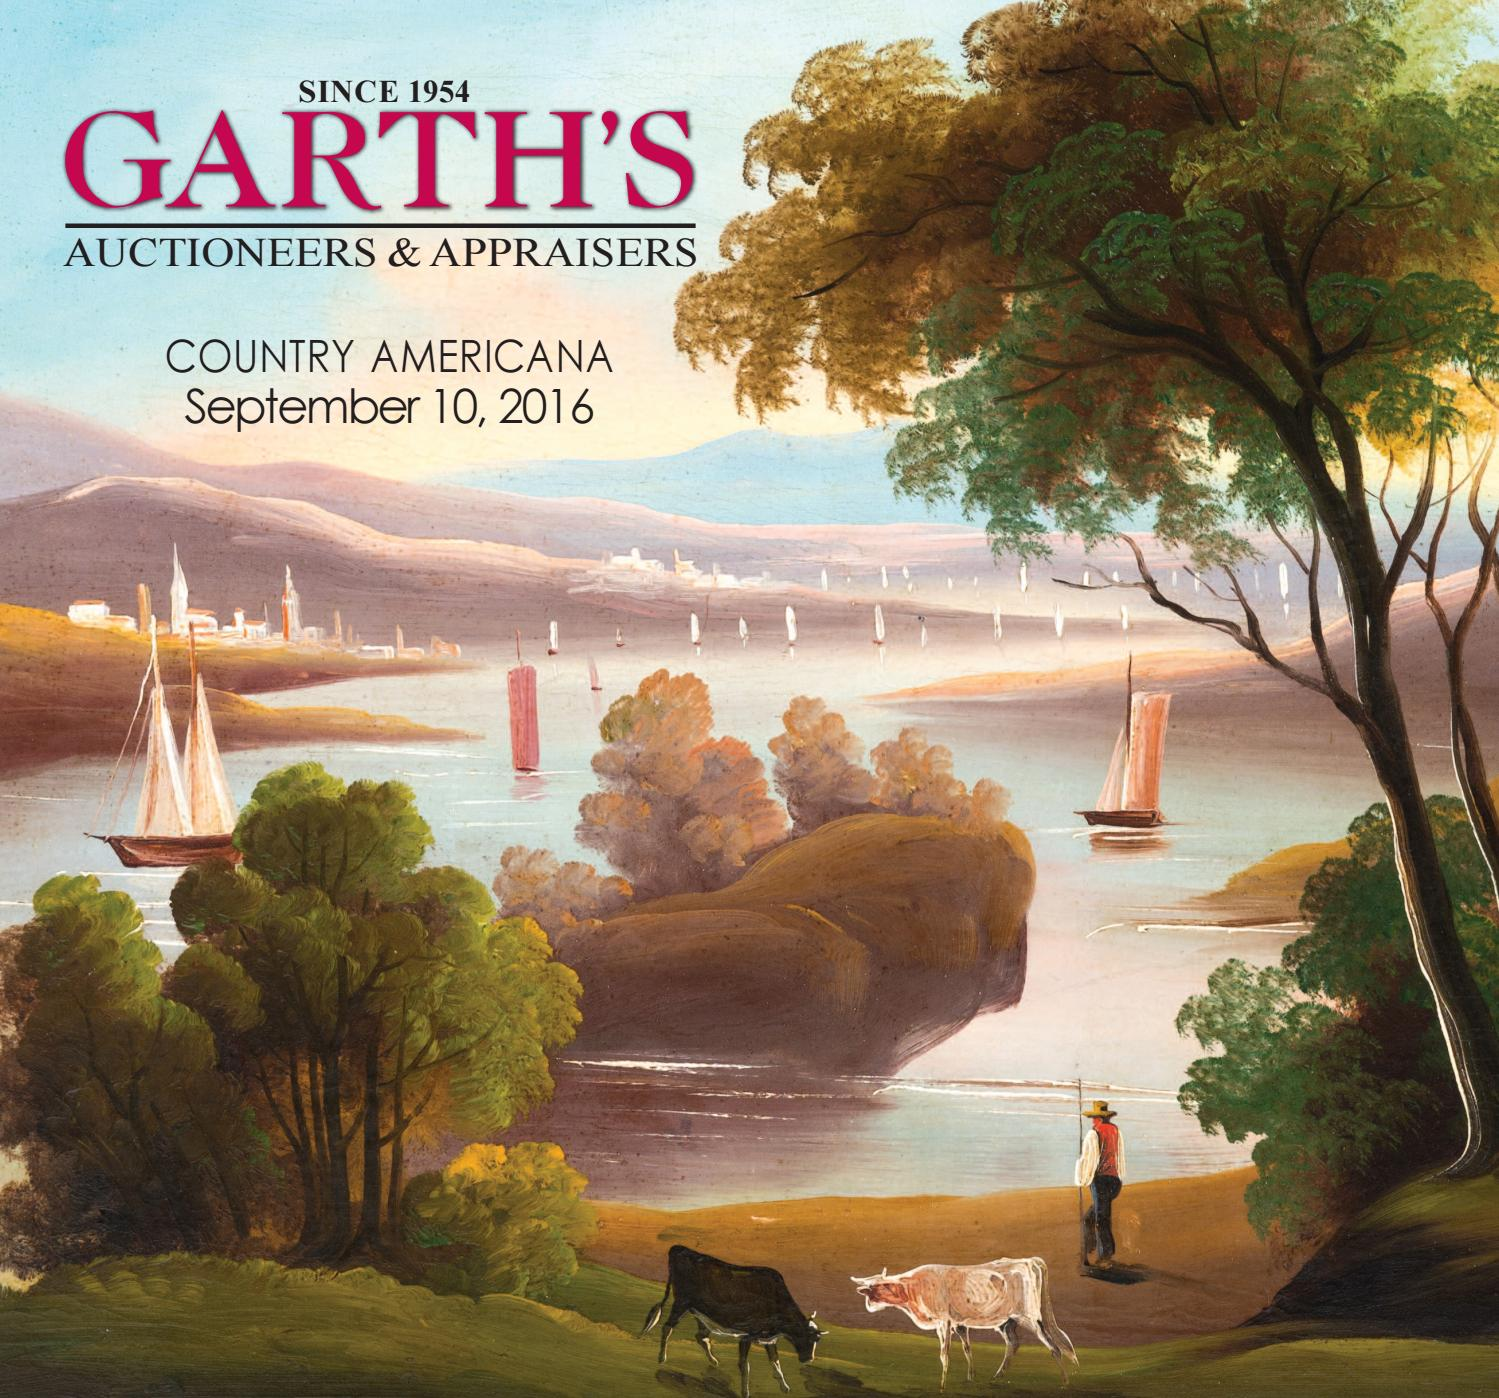 Garth S Country Americana Auction Catalog September 10 2016 By Garth S Auctions Issuu